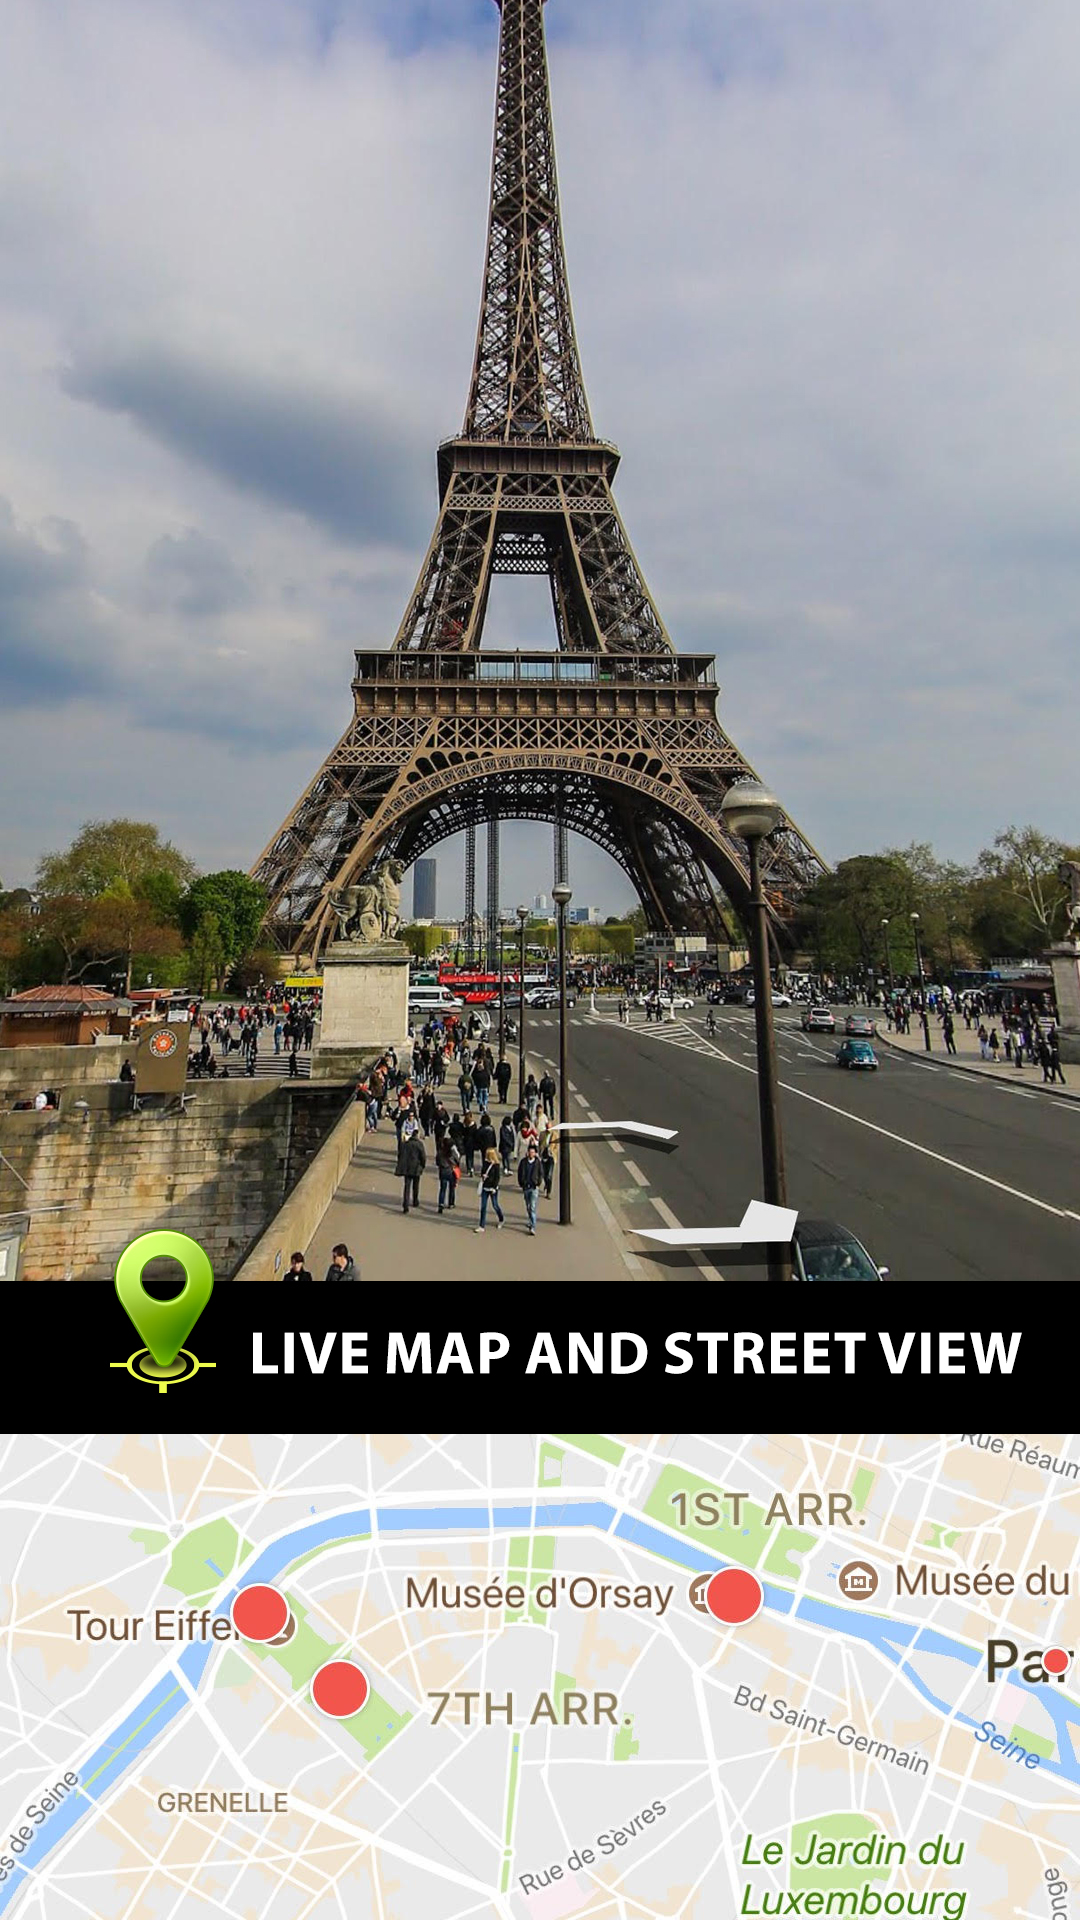 Live Street View Satellite - Live Street View Maps: Amazon.co.uk: Appstore for Android